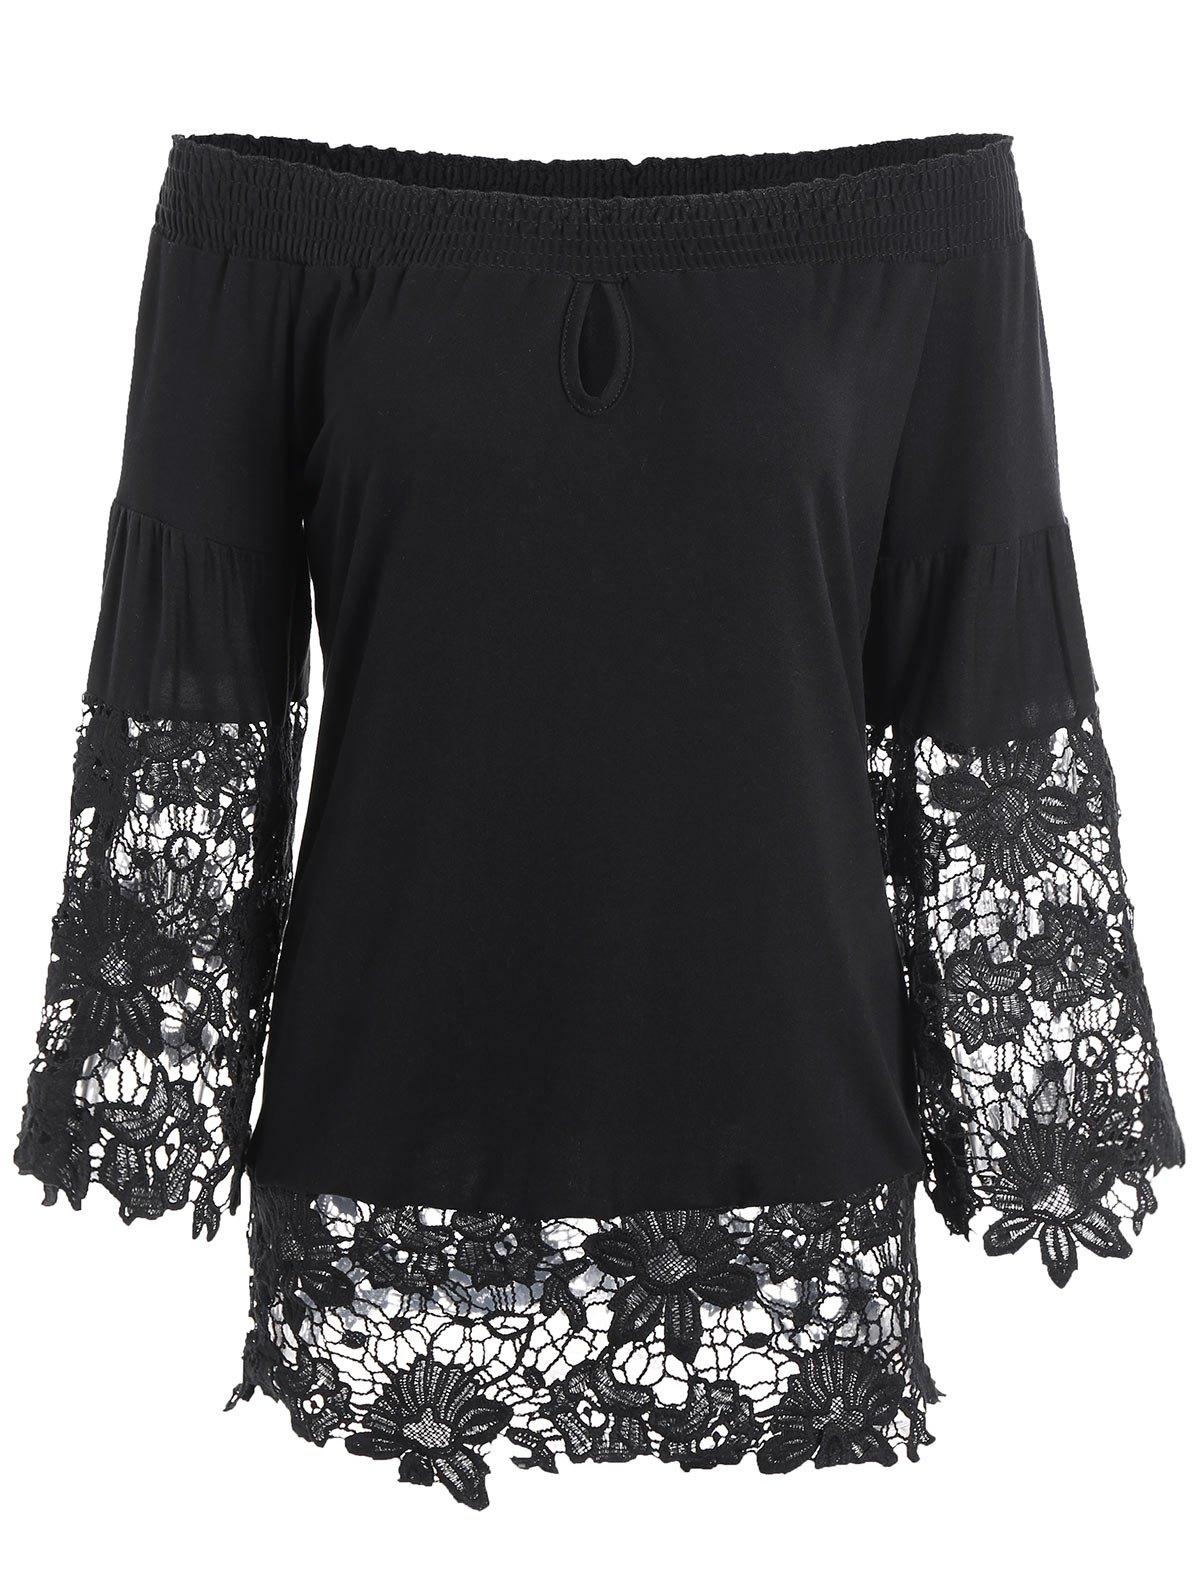 Lace Insert Off The Shoulder Keyhole Blouse от Dresslily.com INT